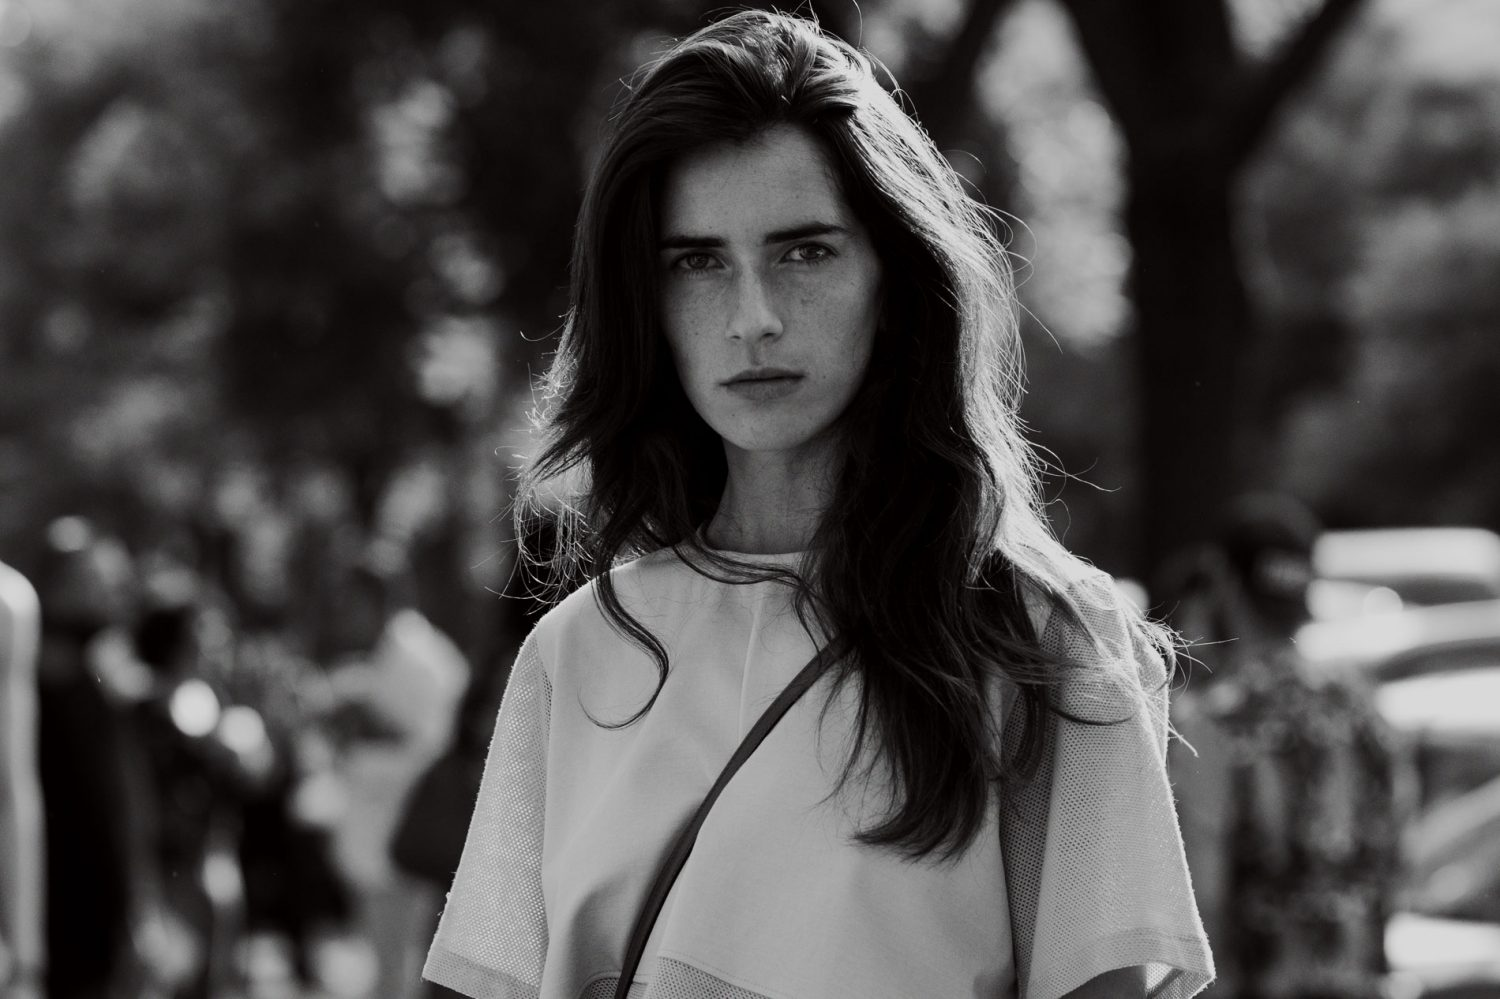 Chiara Totire at Milan Men's Fashion Week Spring/Summer 2014